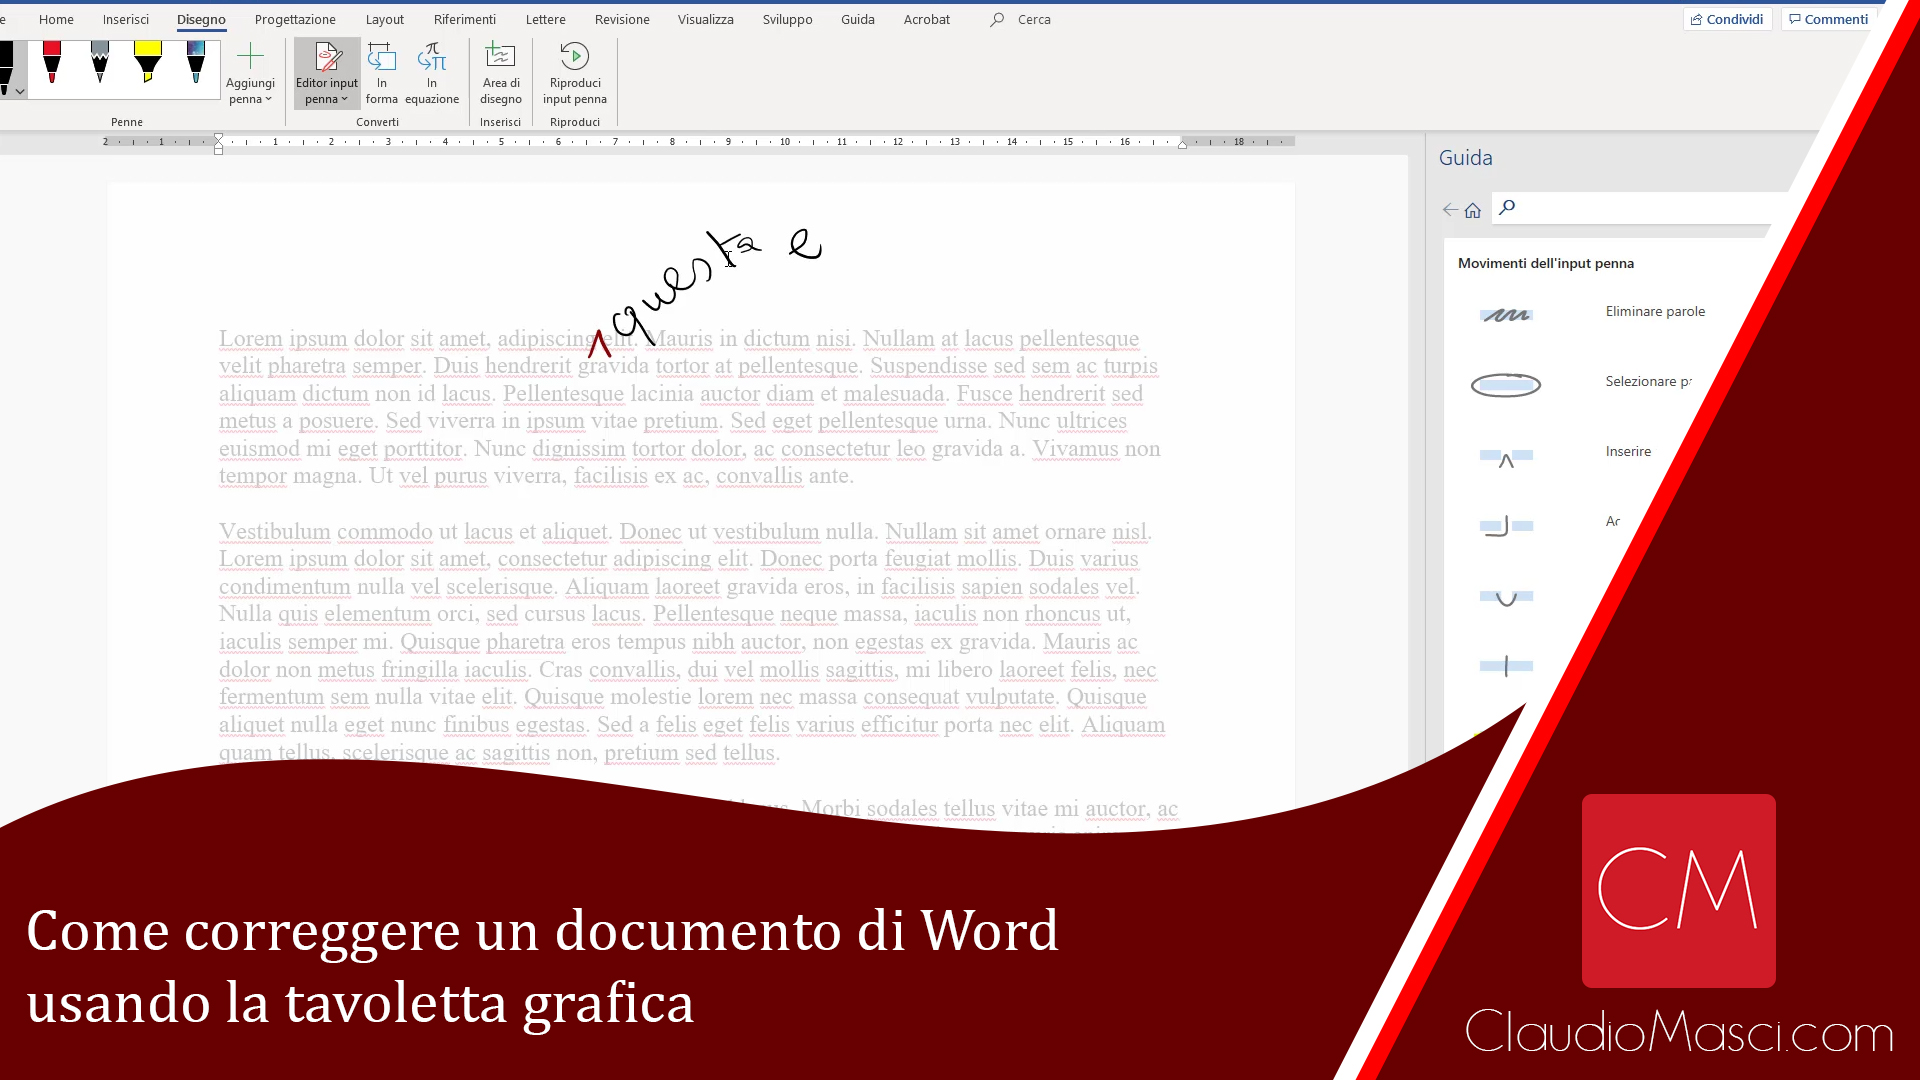 Come correggere un documento di Word usando la tavoletta grafica